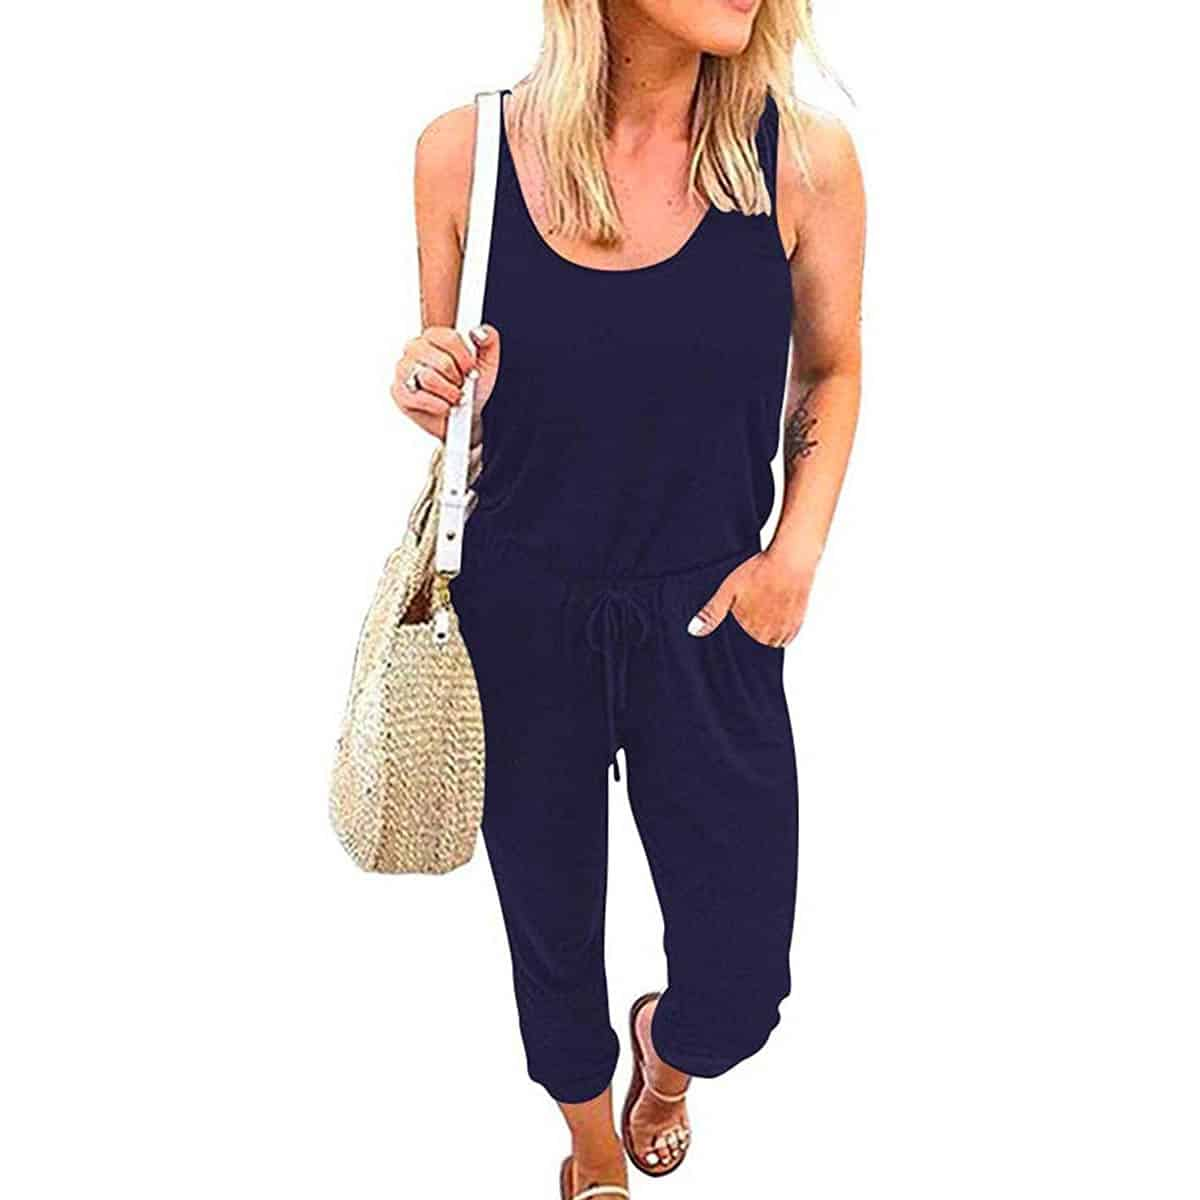 10 Stylish and Comfy Summer Clothes I'm Adding to My Wardrobe Right Now 6